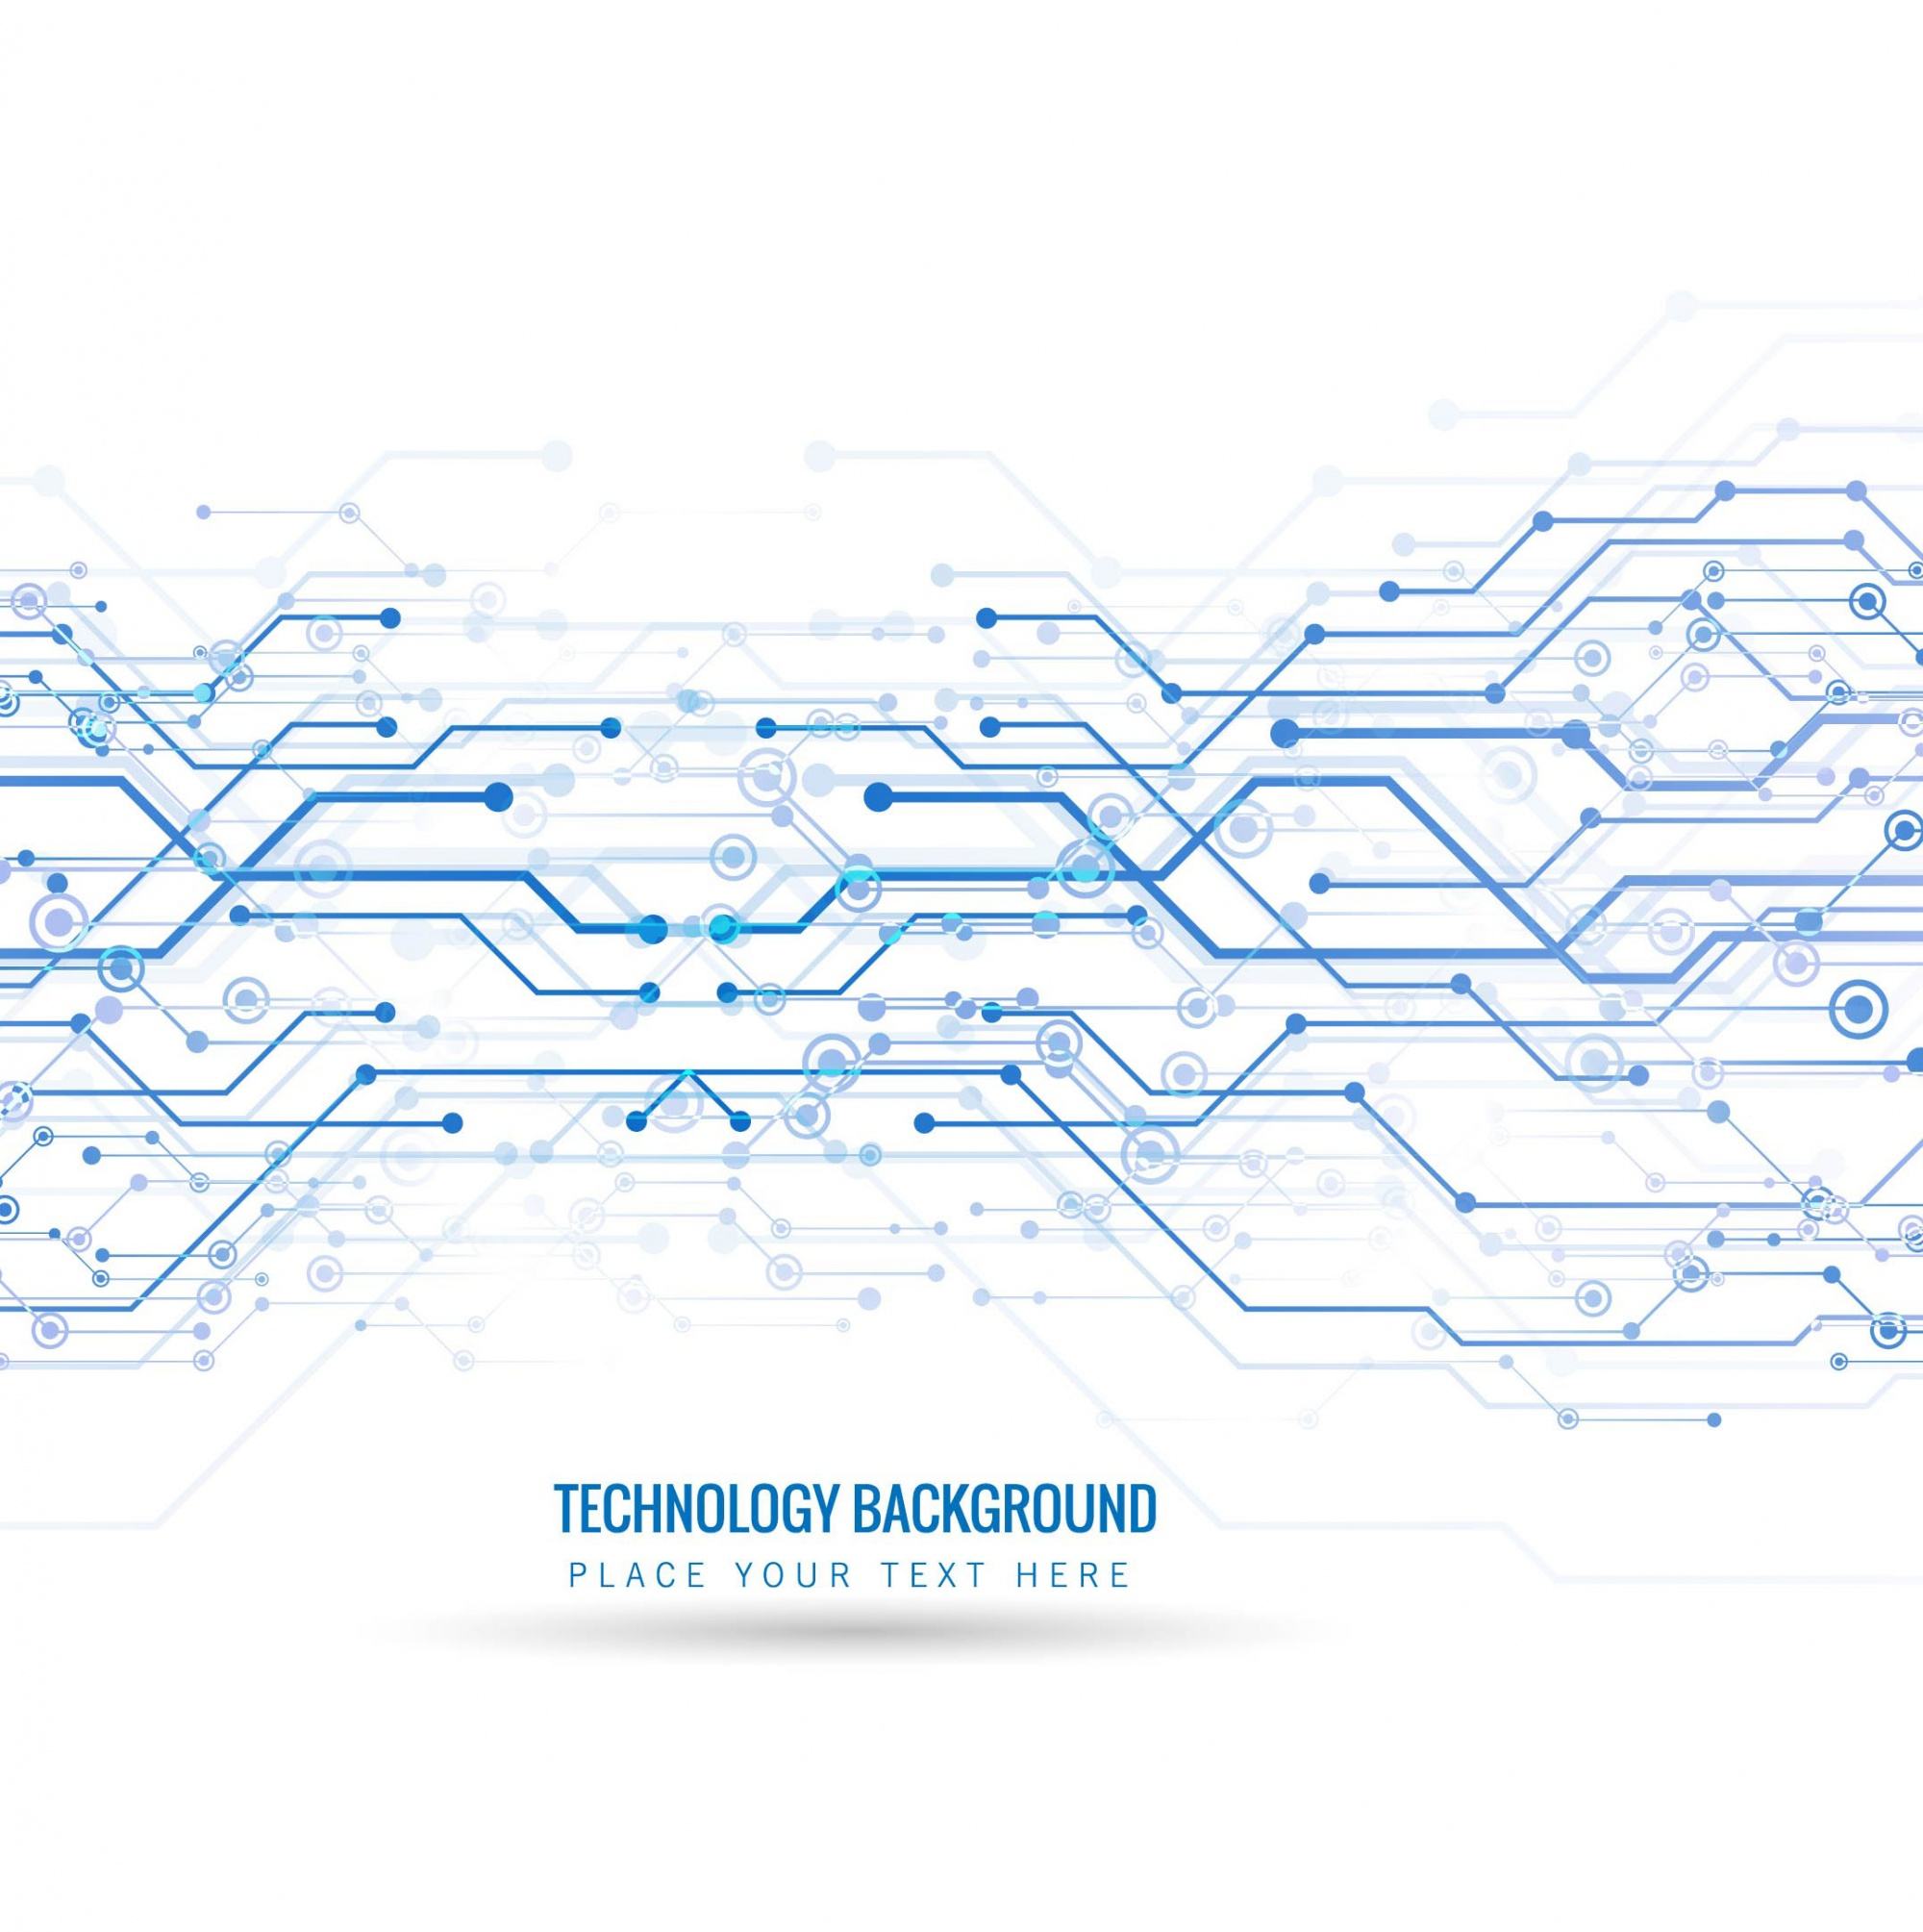 Technological background with blue lines and dots